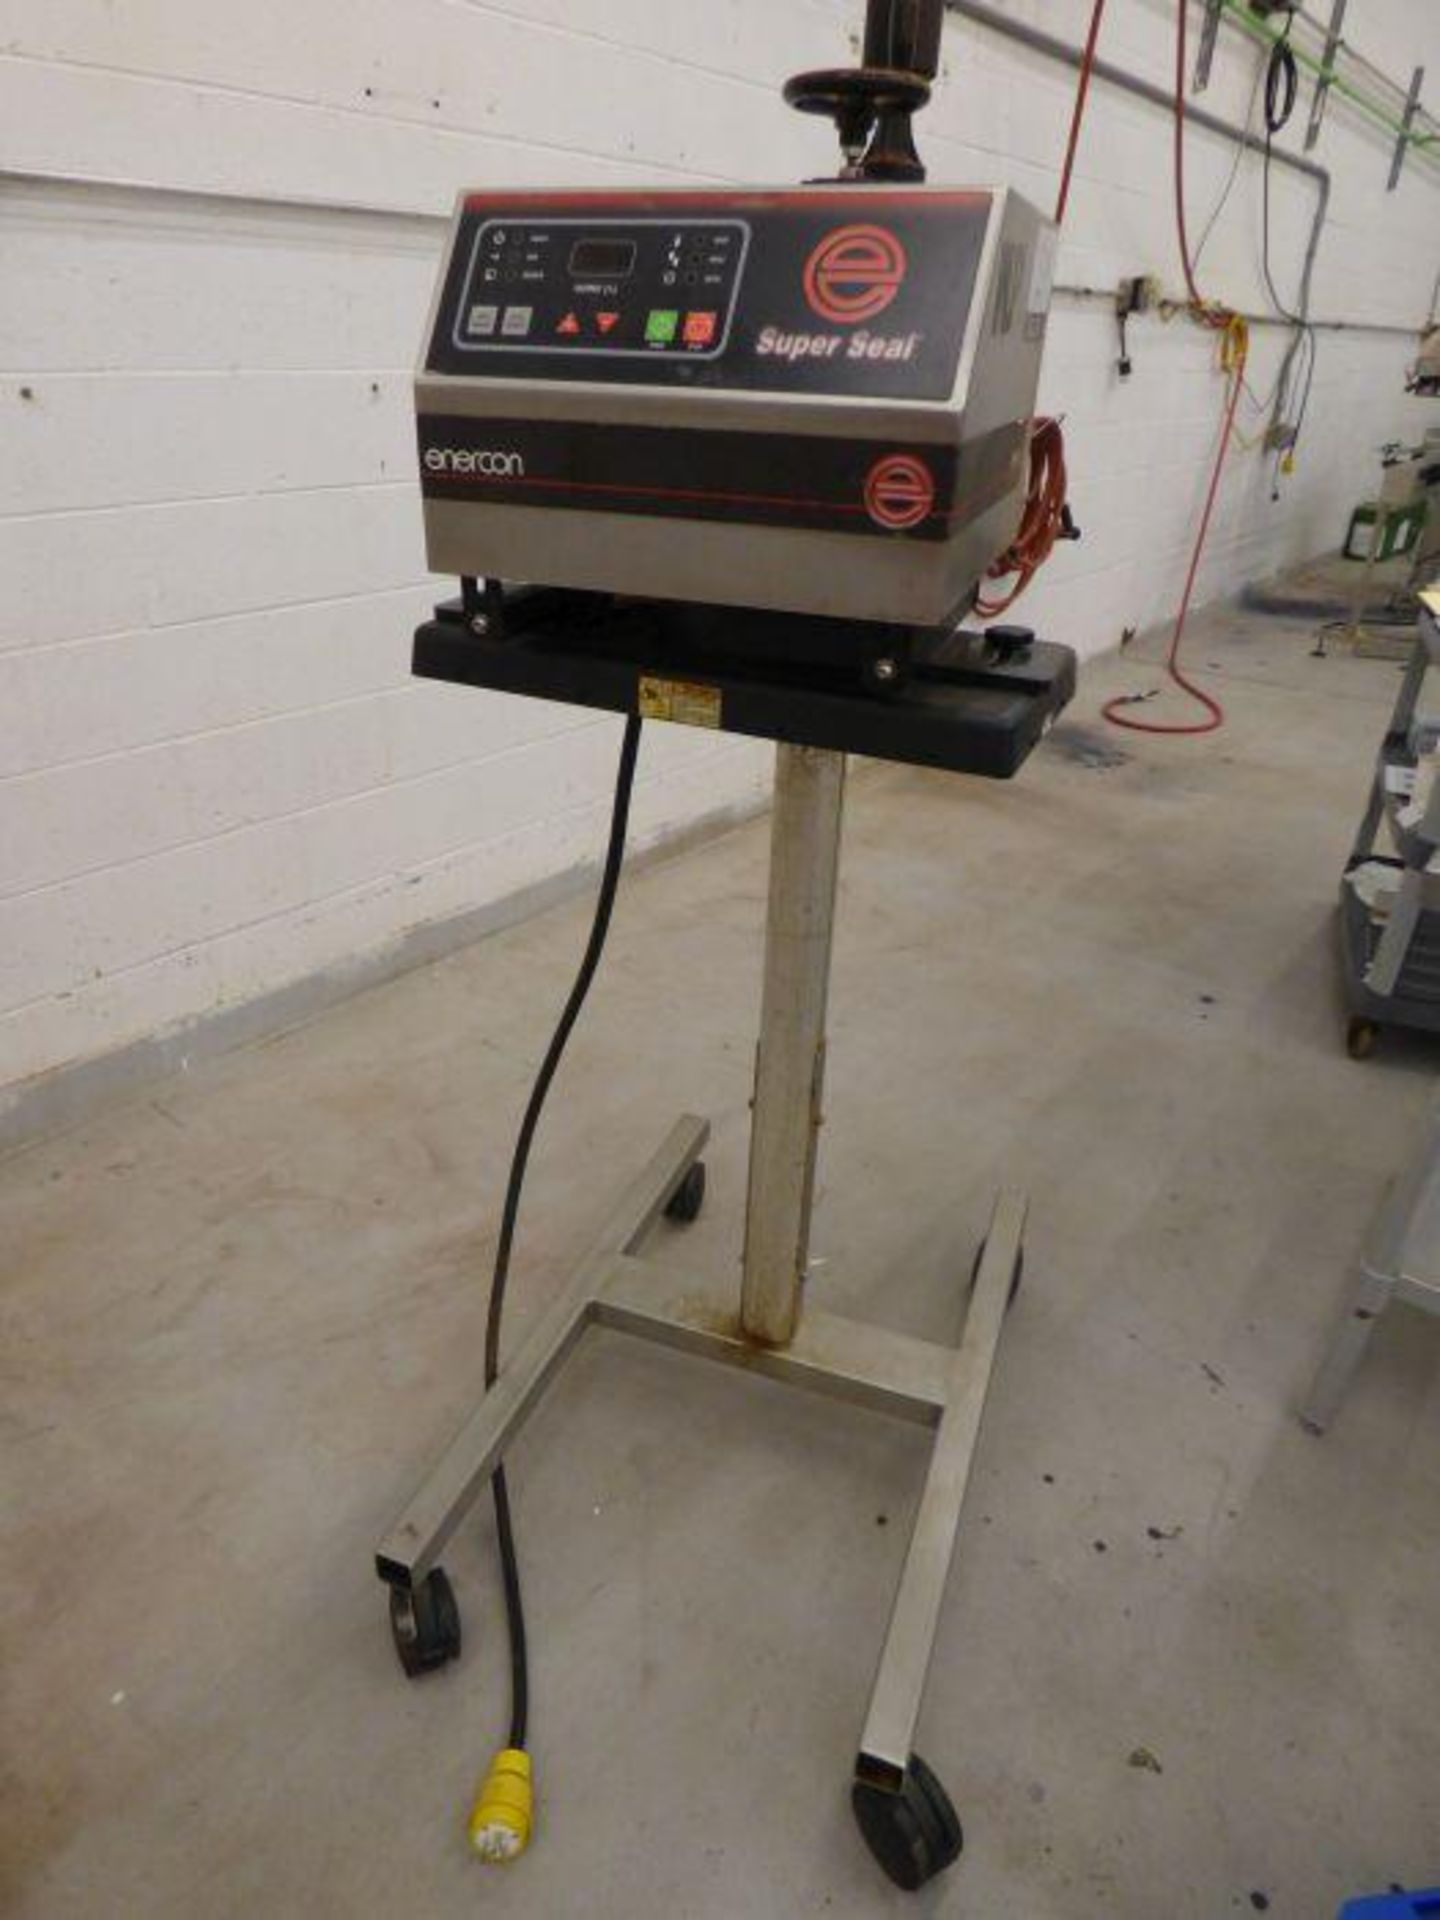 Enercon Super Seal Touch 100 with Spare Parts - Image 4 of 17